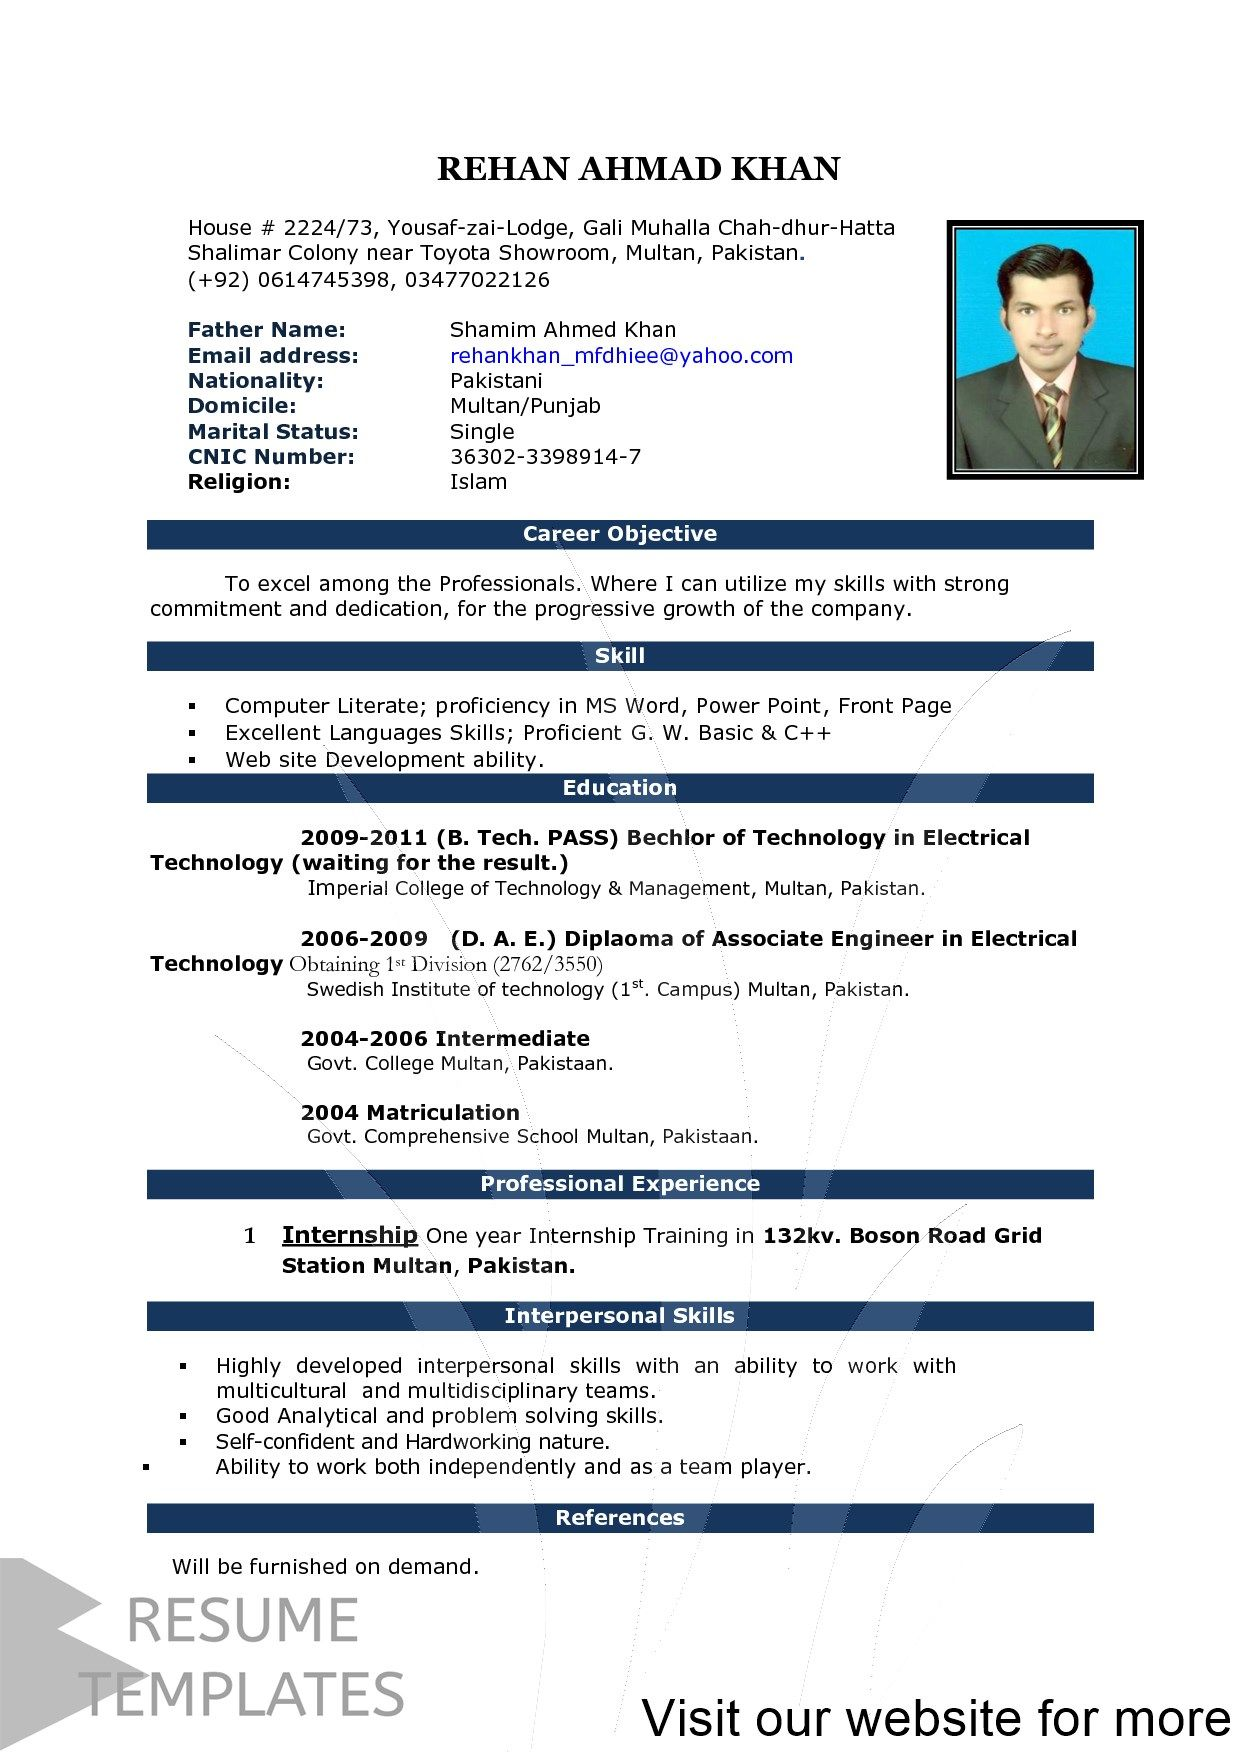 resume format for job interview best examples personal marketing good opening statement Resume Best Resume Format For Job Interview